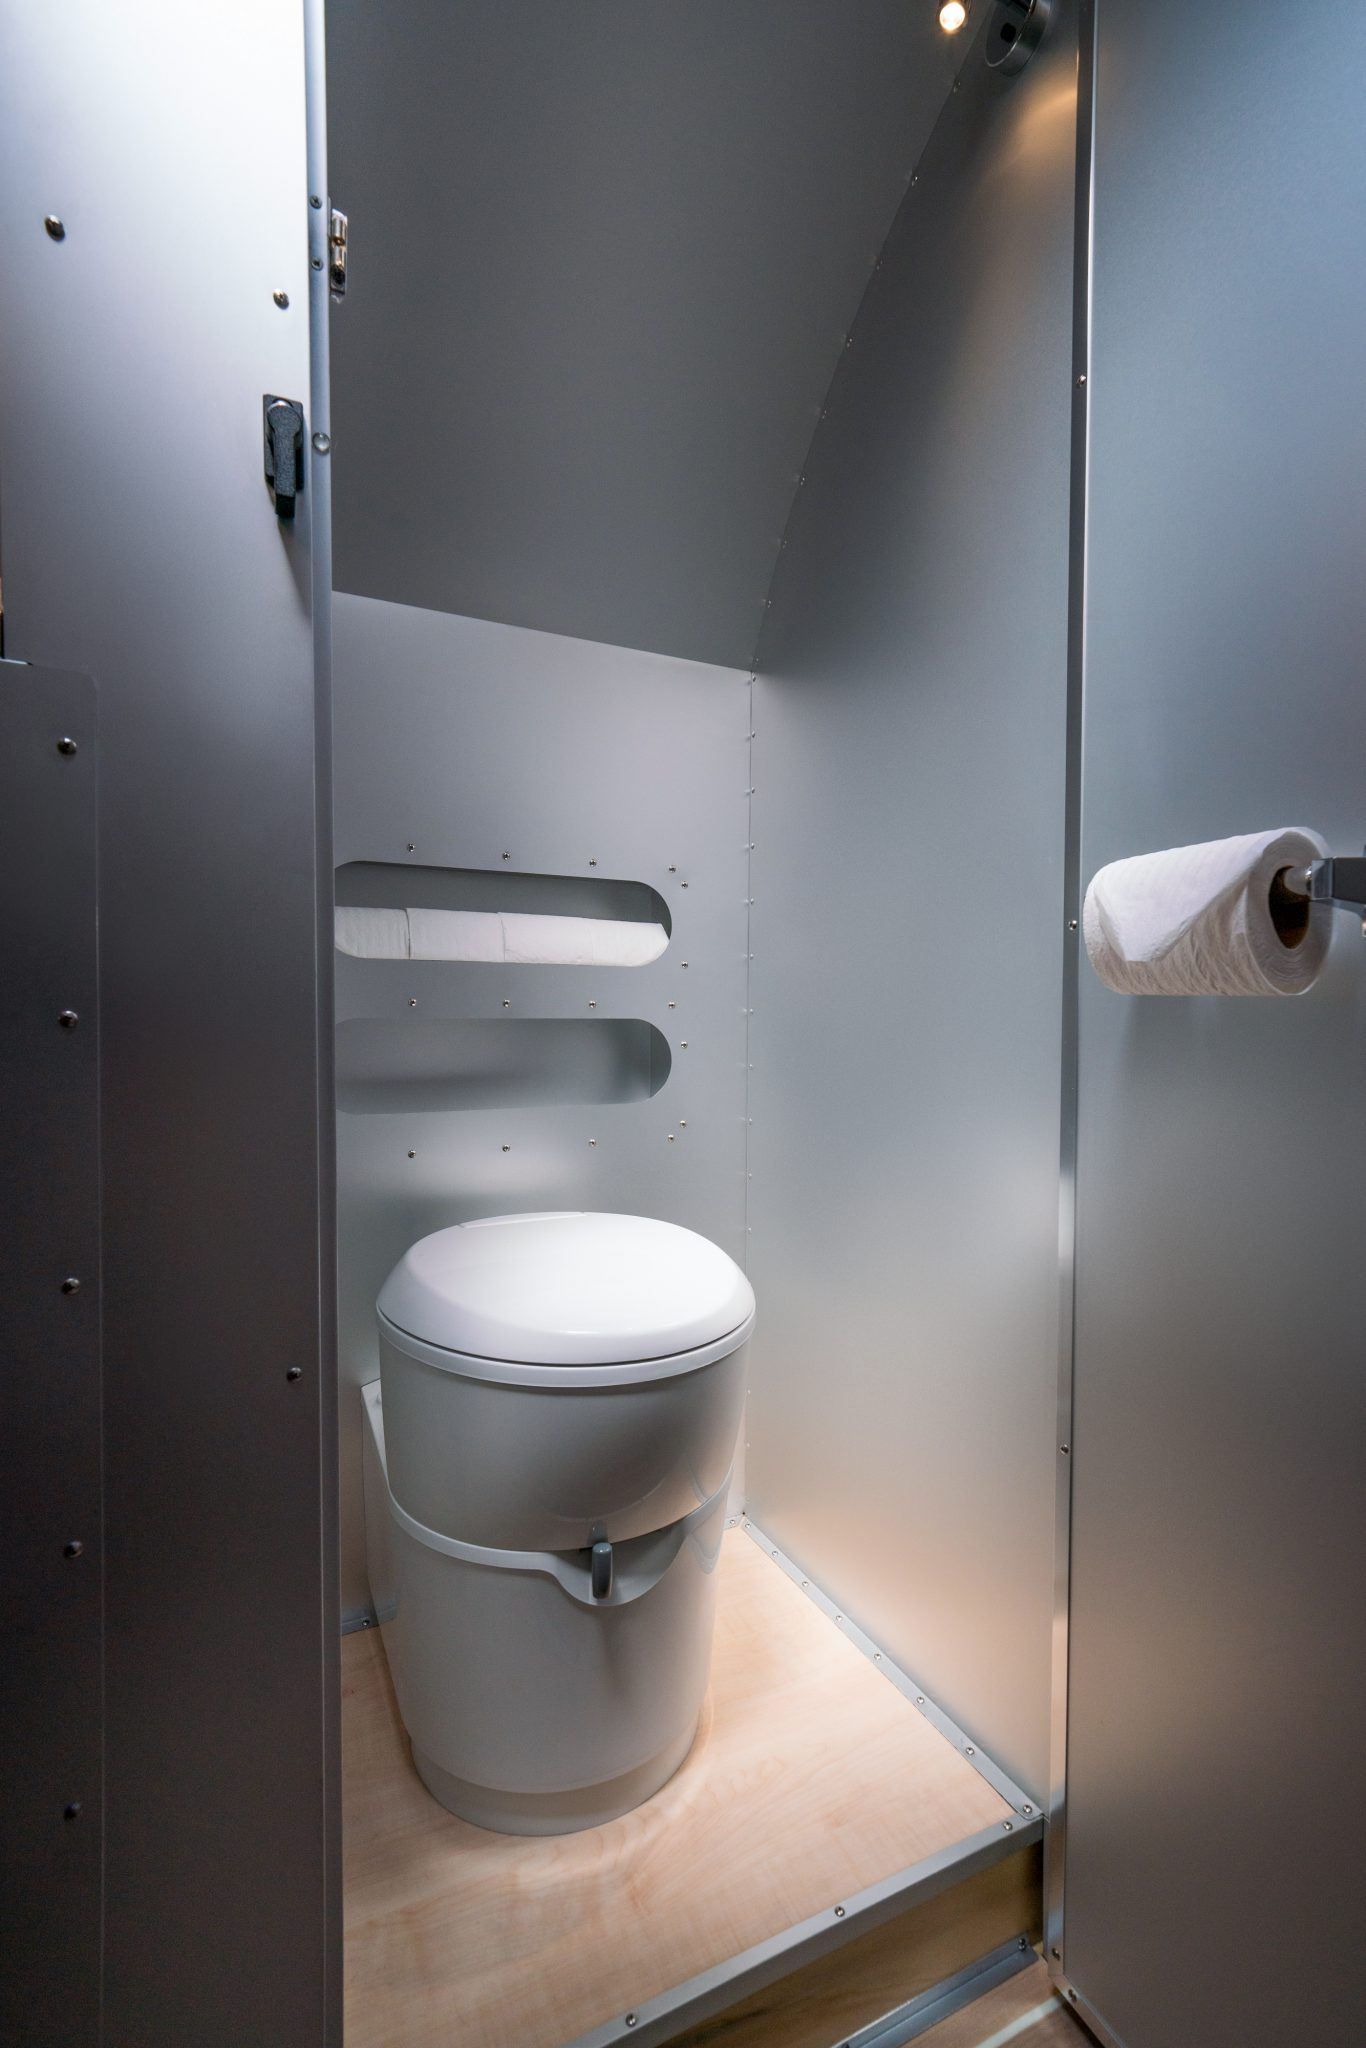 The Best RV Toilet In The World